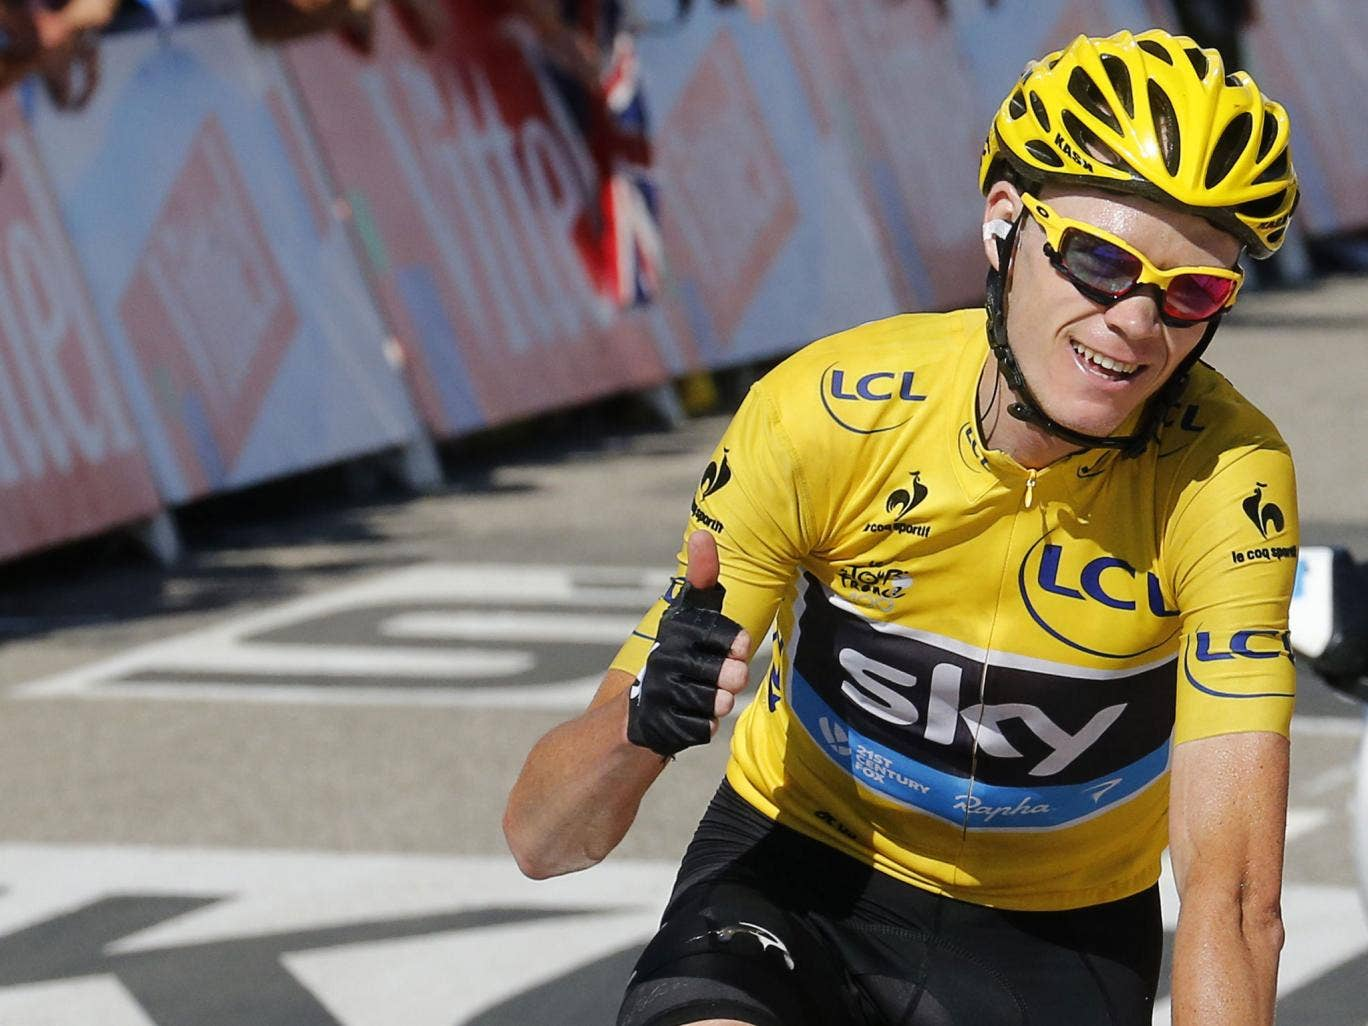 On the road to Paris: Tour leader Chris Froome finishing yesterday's stage